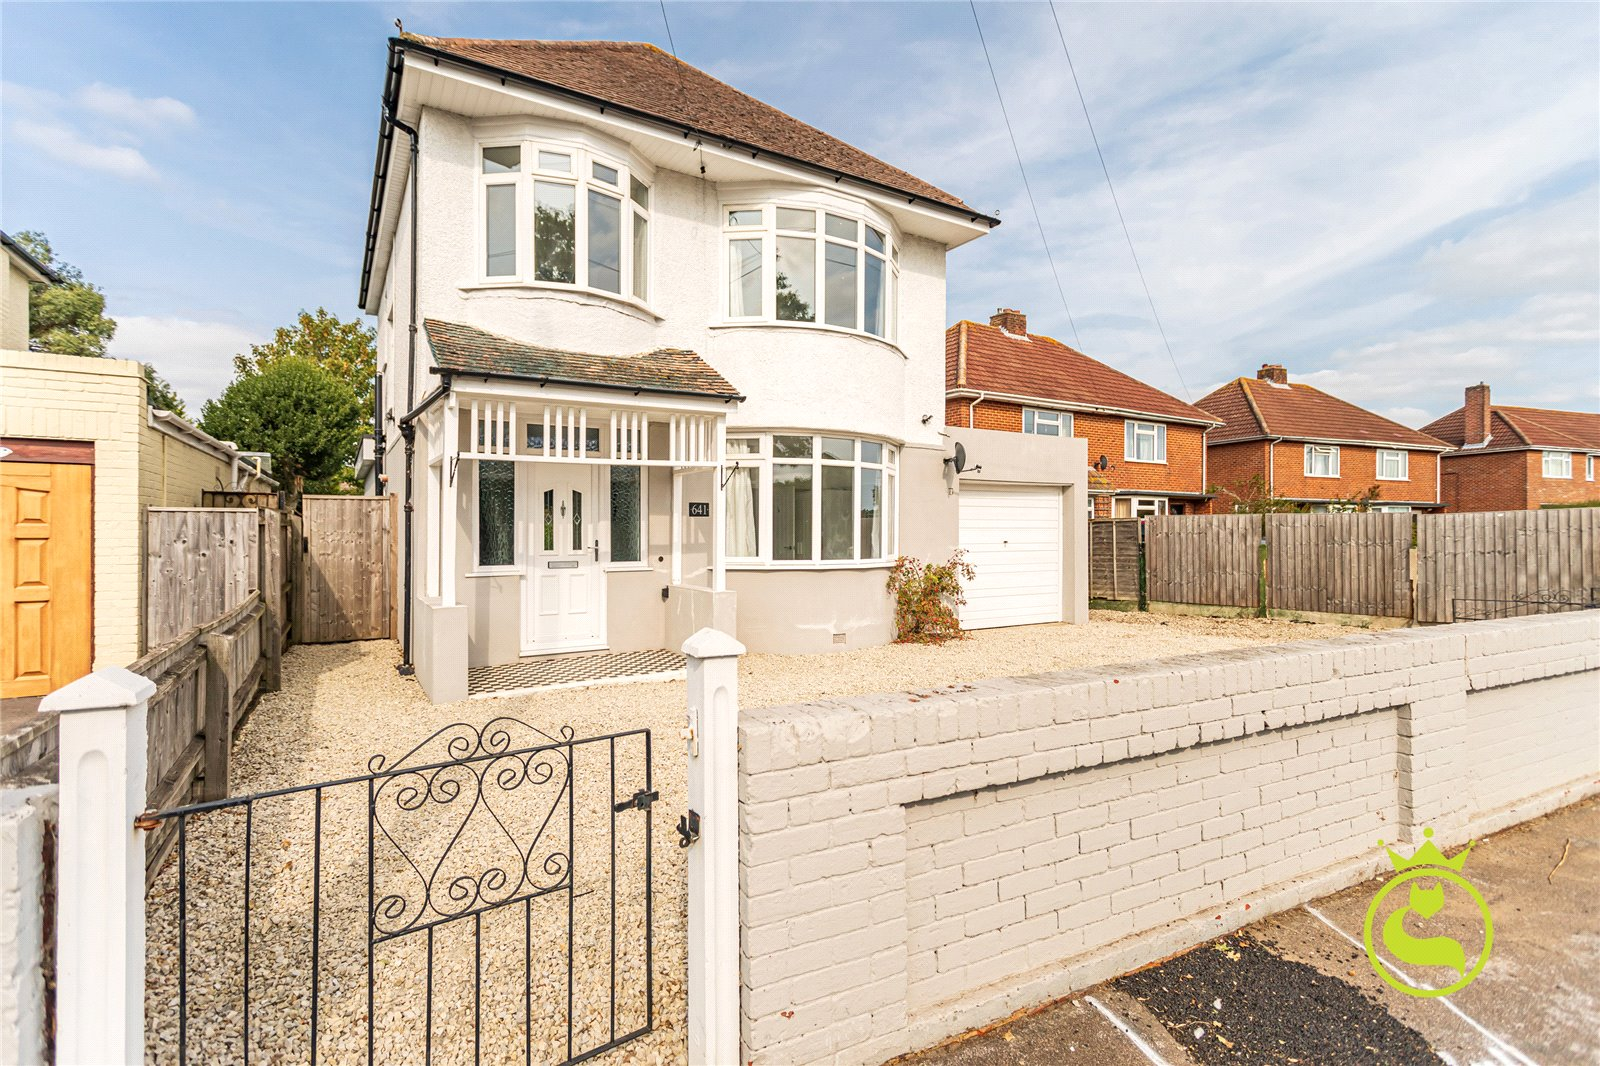 4 bed house for sale in Castle Lane West, Bournemouth  - Property Image 1